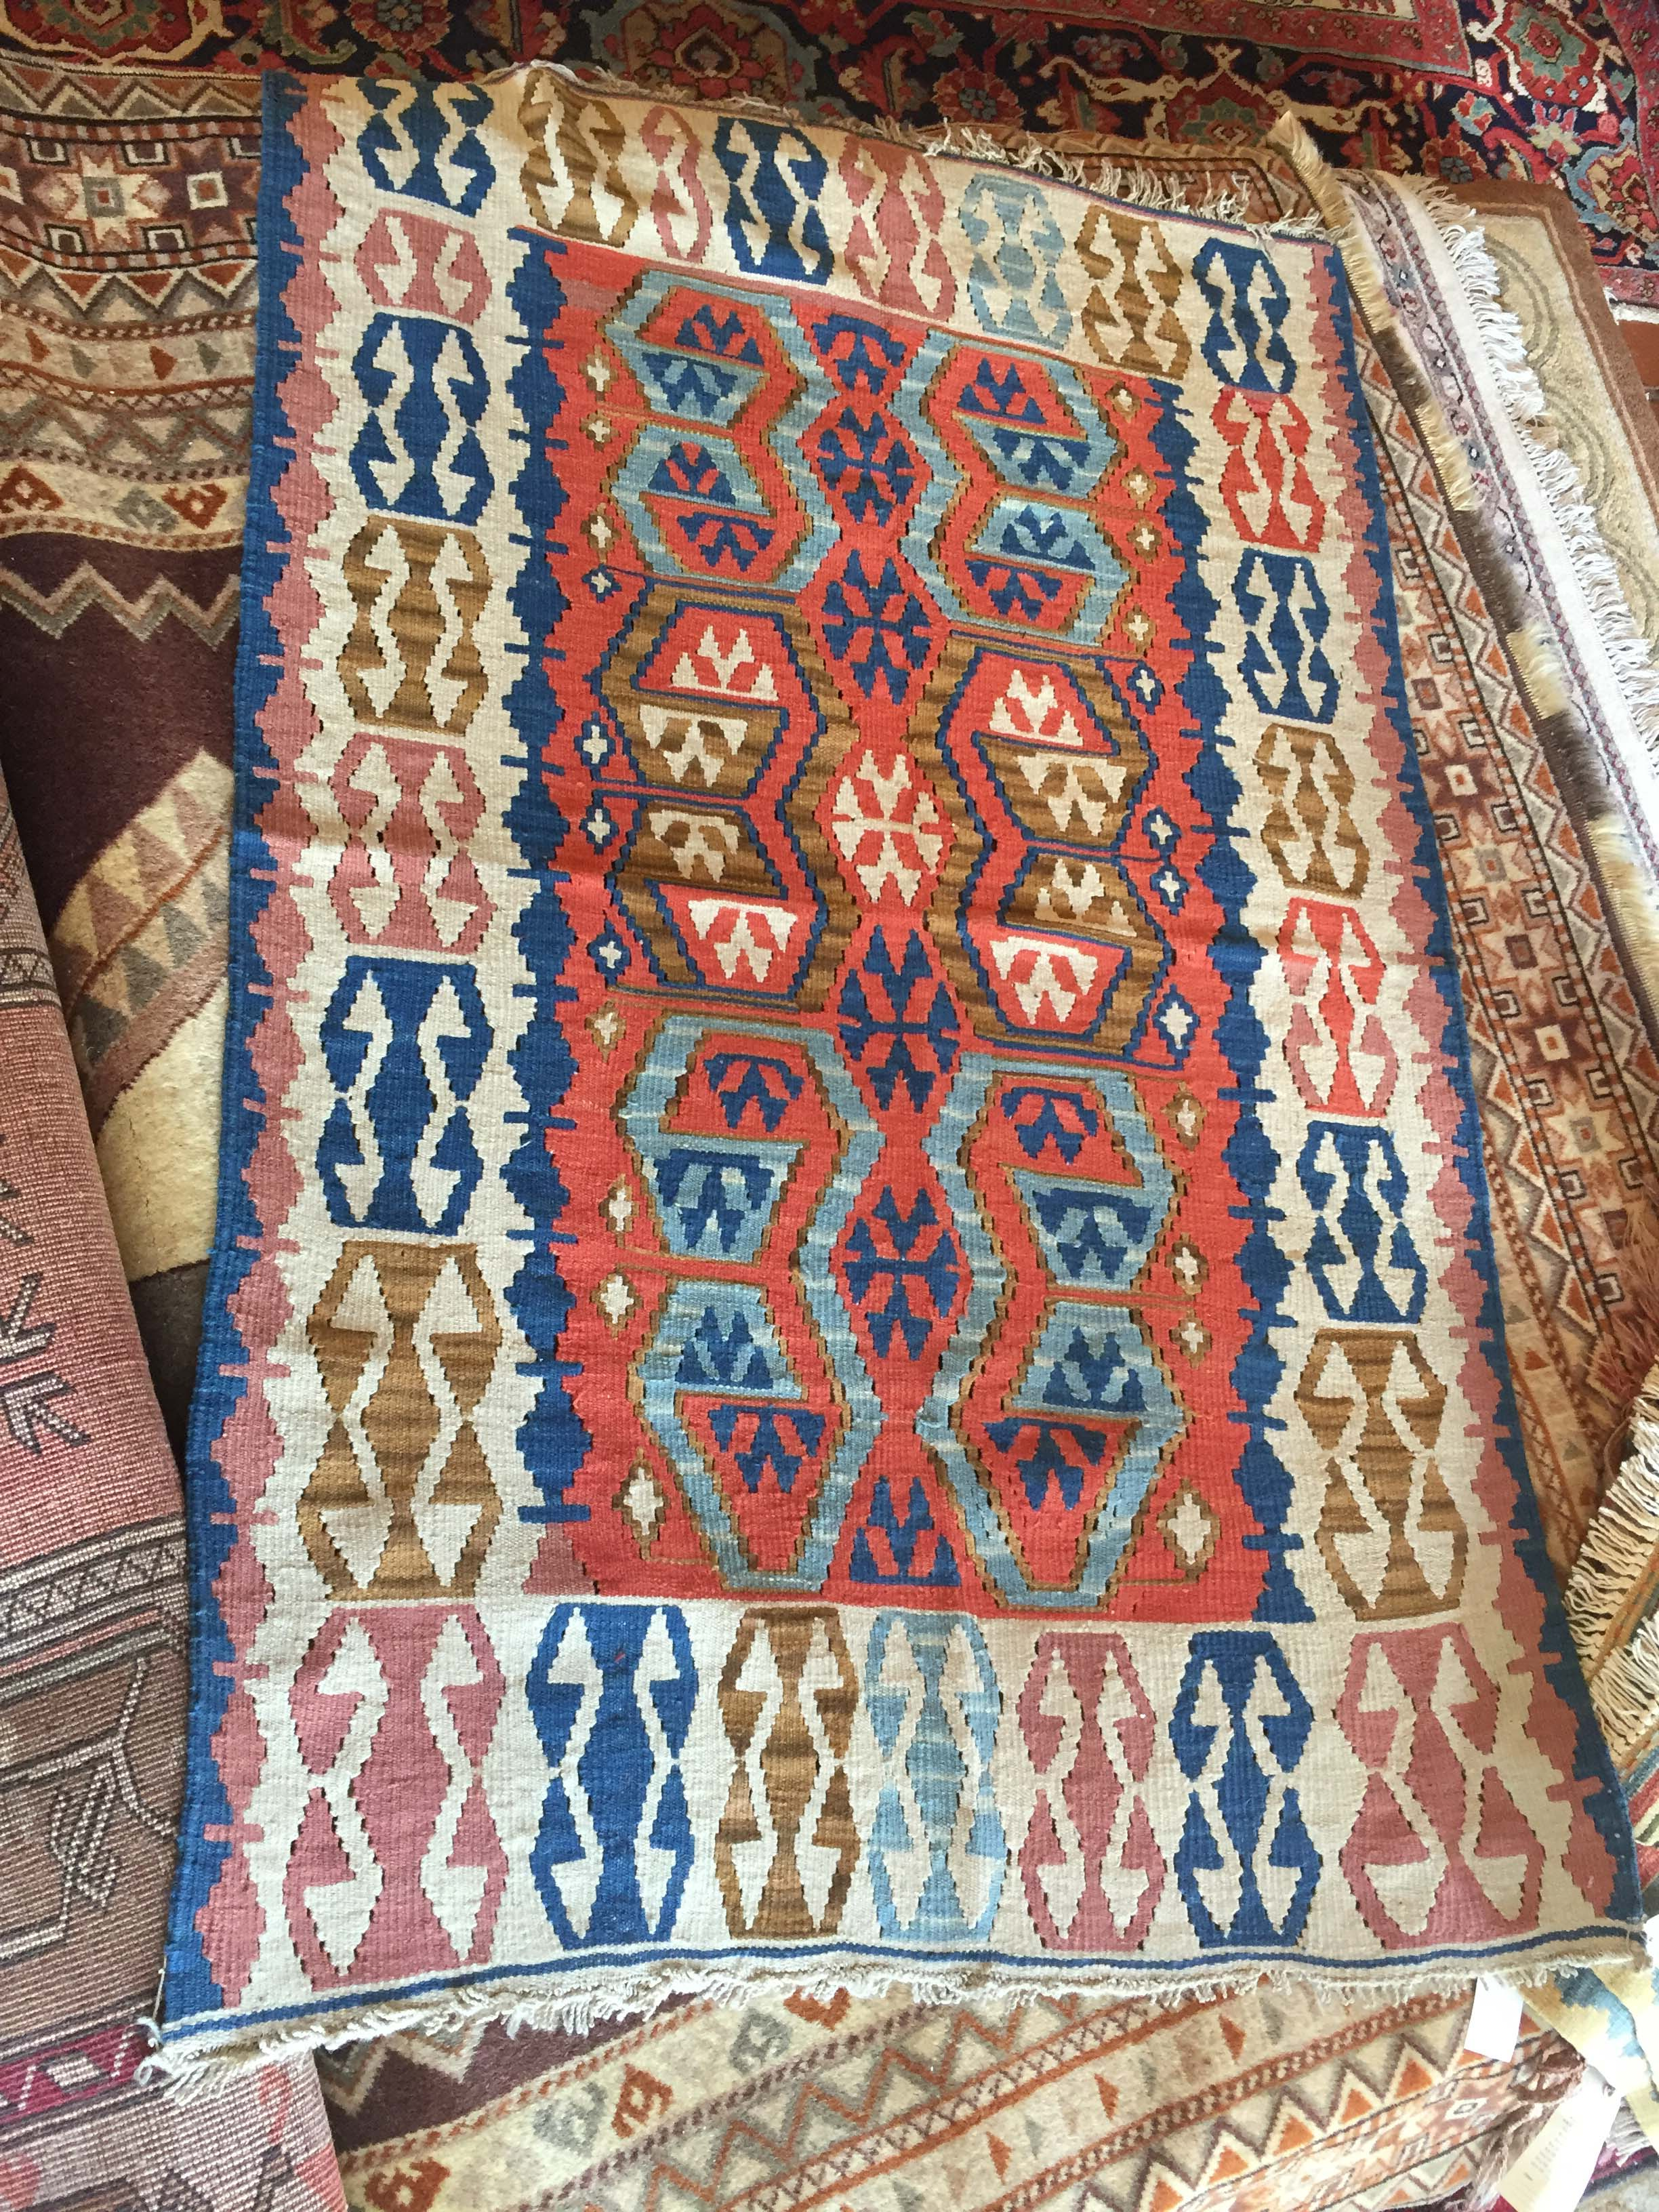 fullxfull small rugs colors kilim patterns artful soft p il old muted wall rug abstract vintage authentic turkish